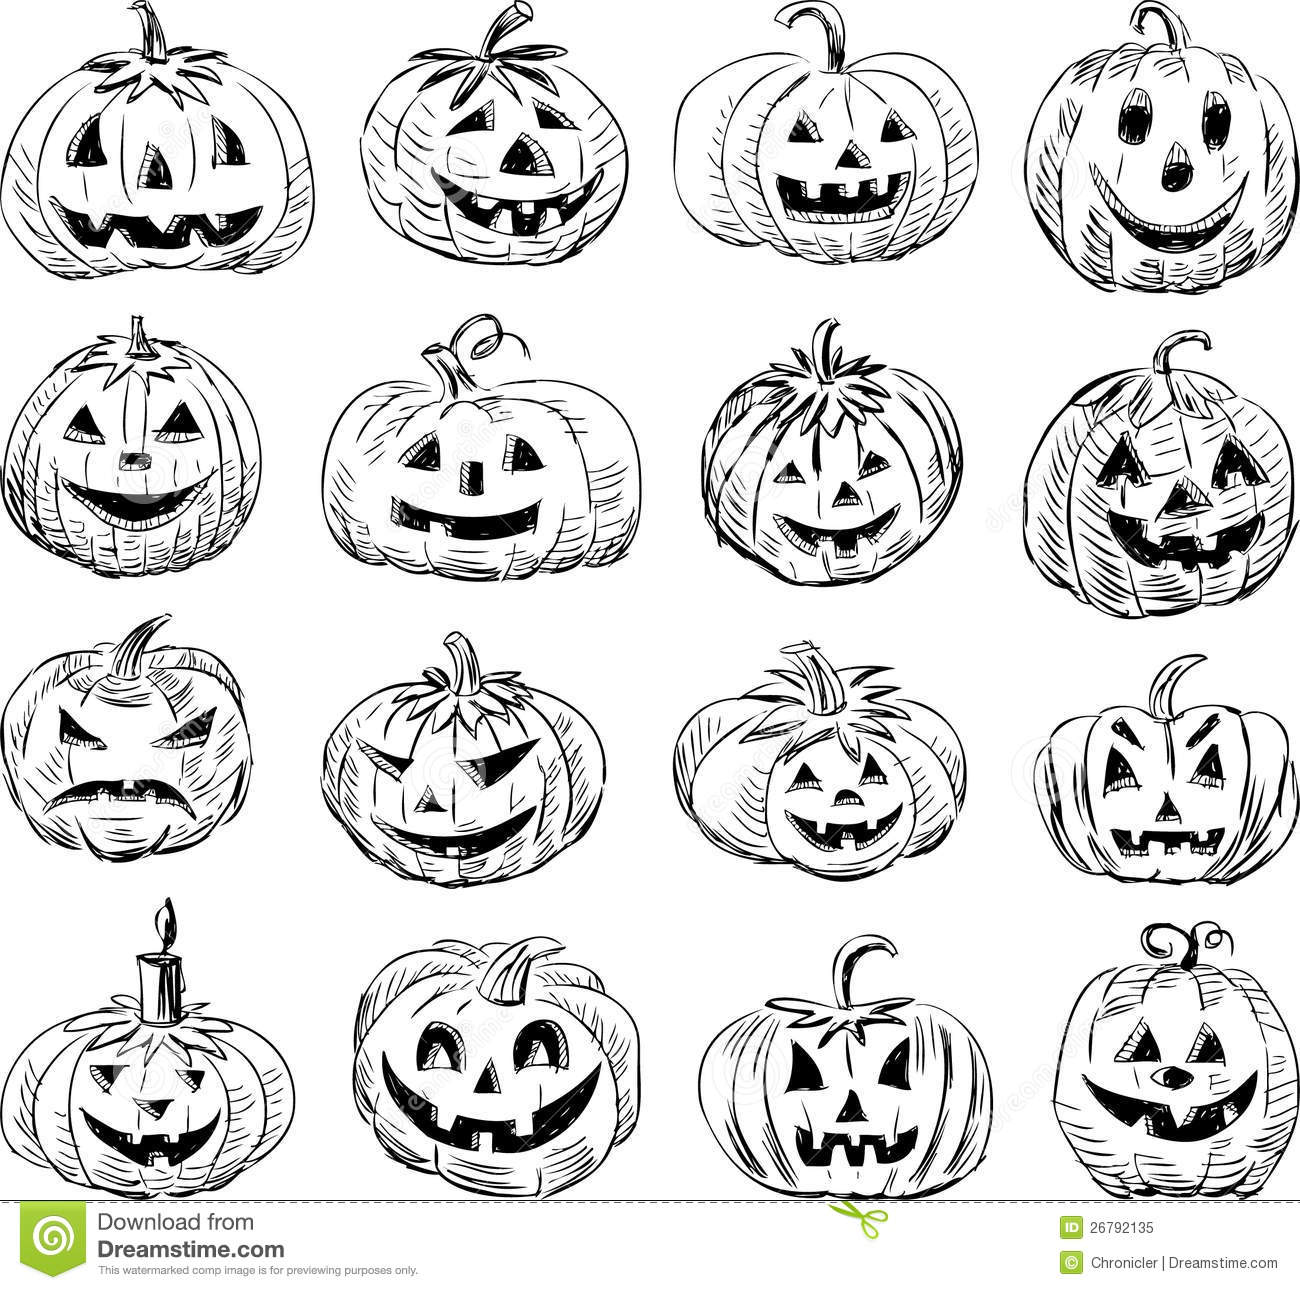 Uncategorized Drawings Of Pumpkins pumpkins royalty free stock photo image 26792135 photo